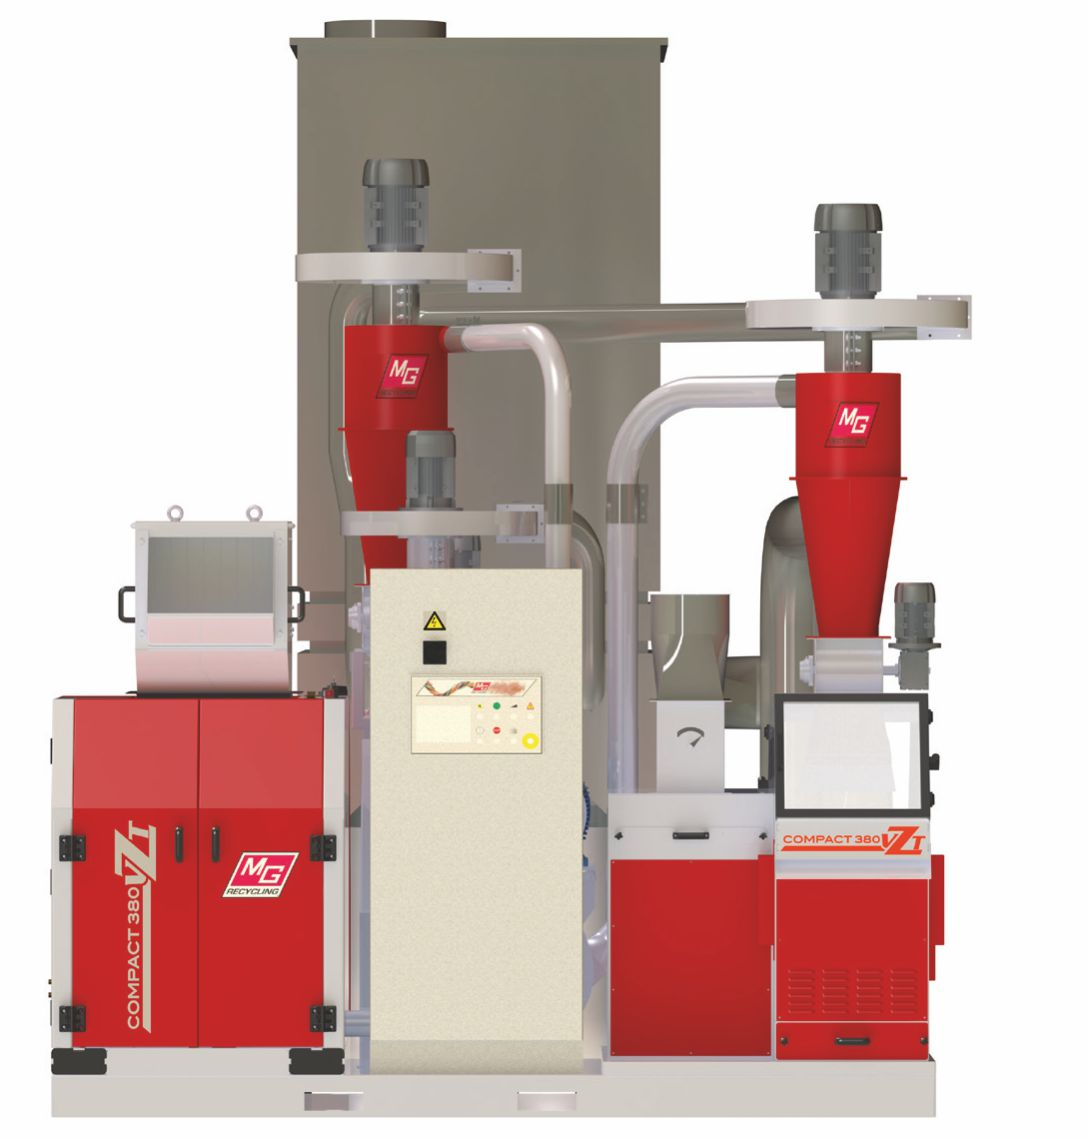 Matrix 380vzt cable granulator